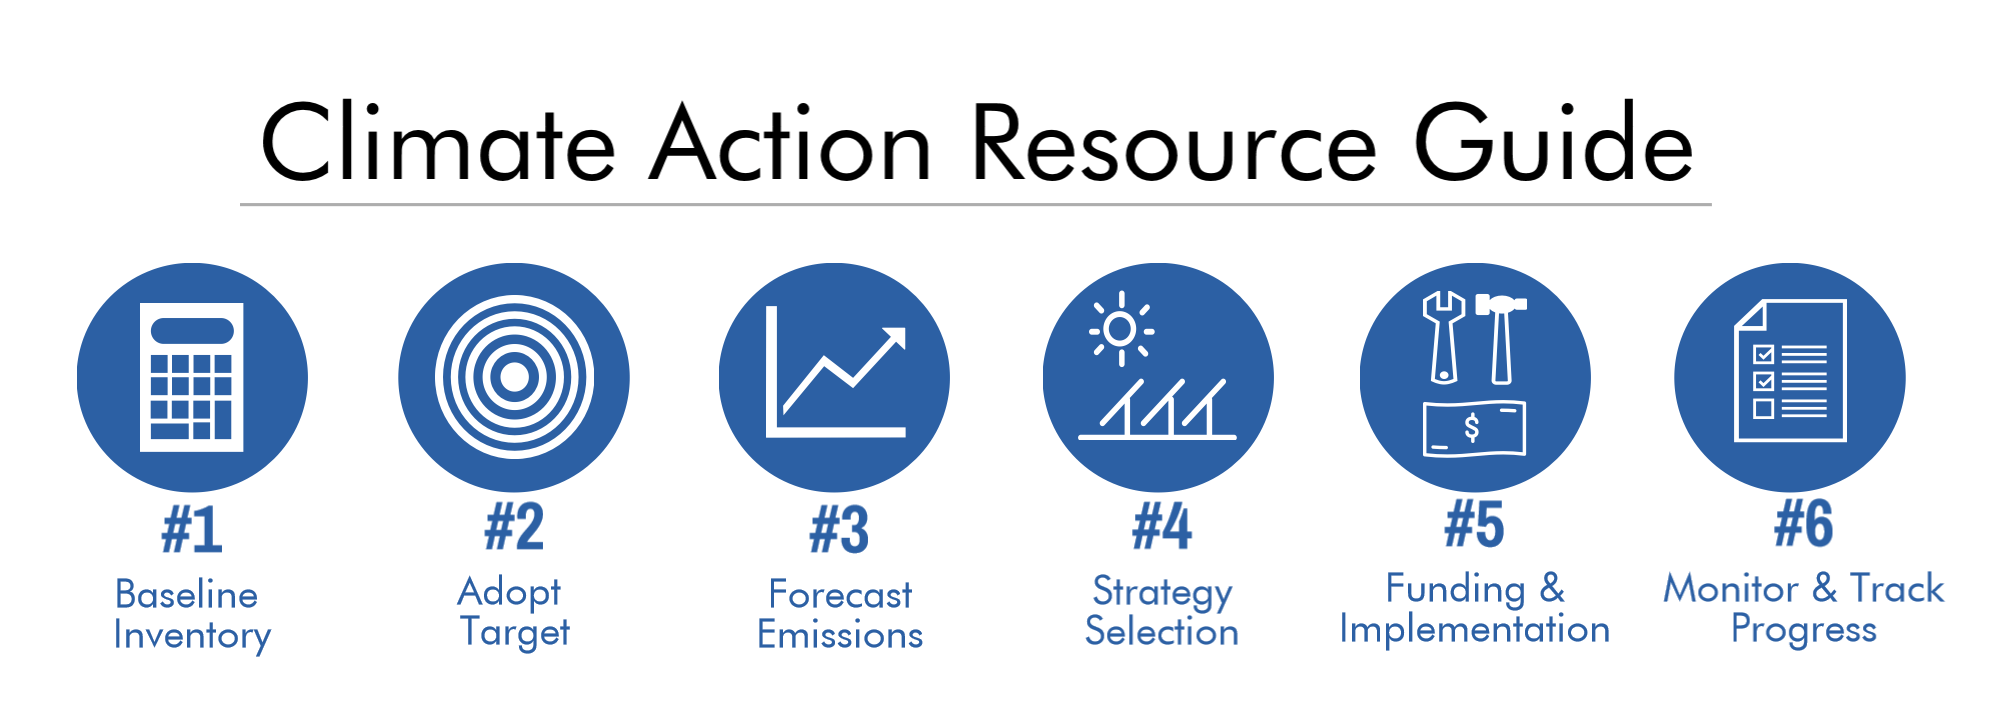 This Page Contains Tools And Resources Necessary For Conducting A  Greenhouse Gas (Ghg) Inventory And Developing A Climate Action Related Plan.